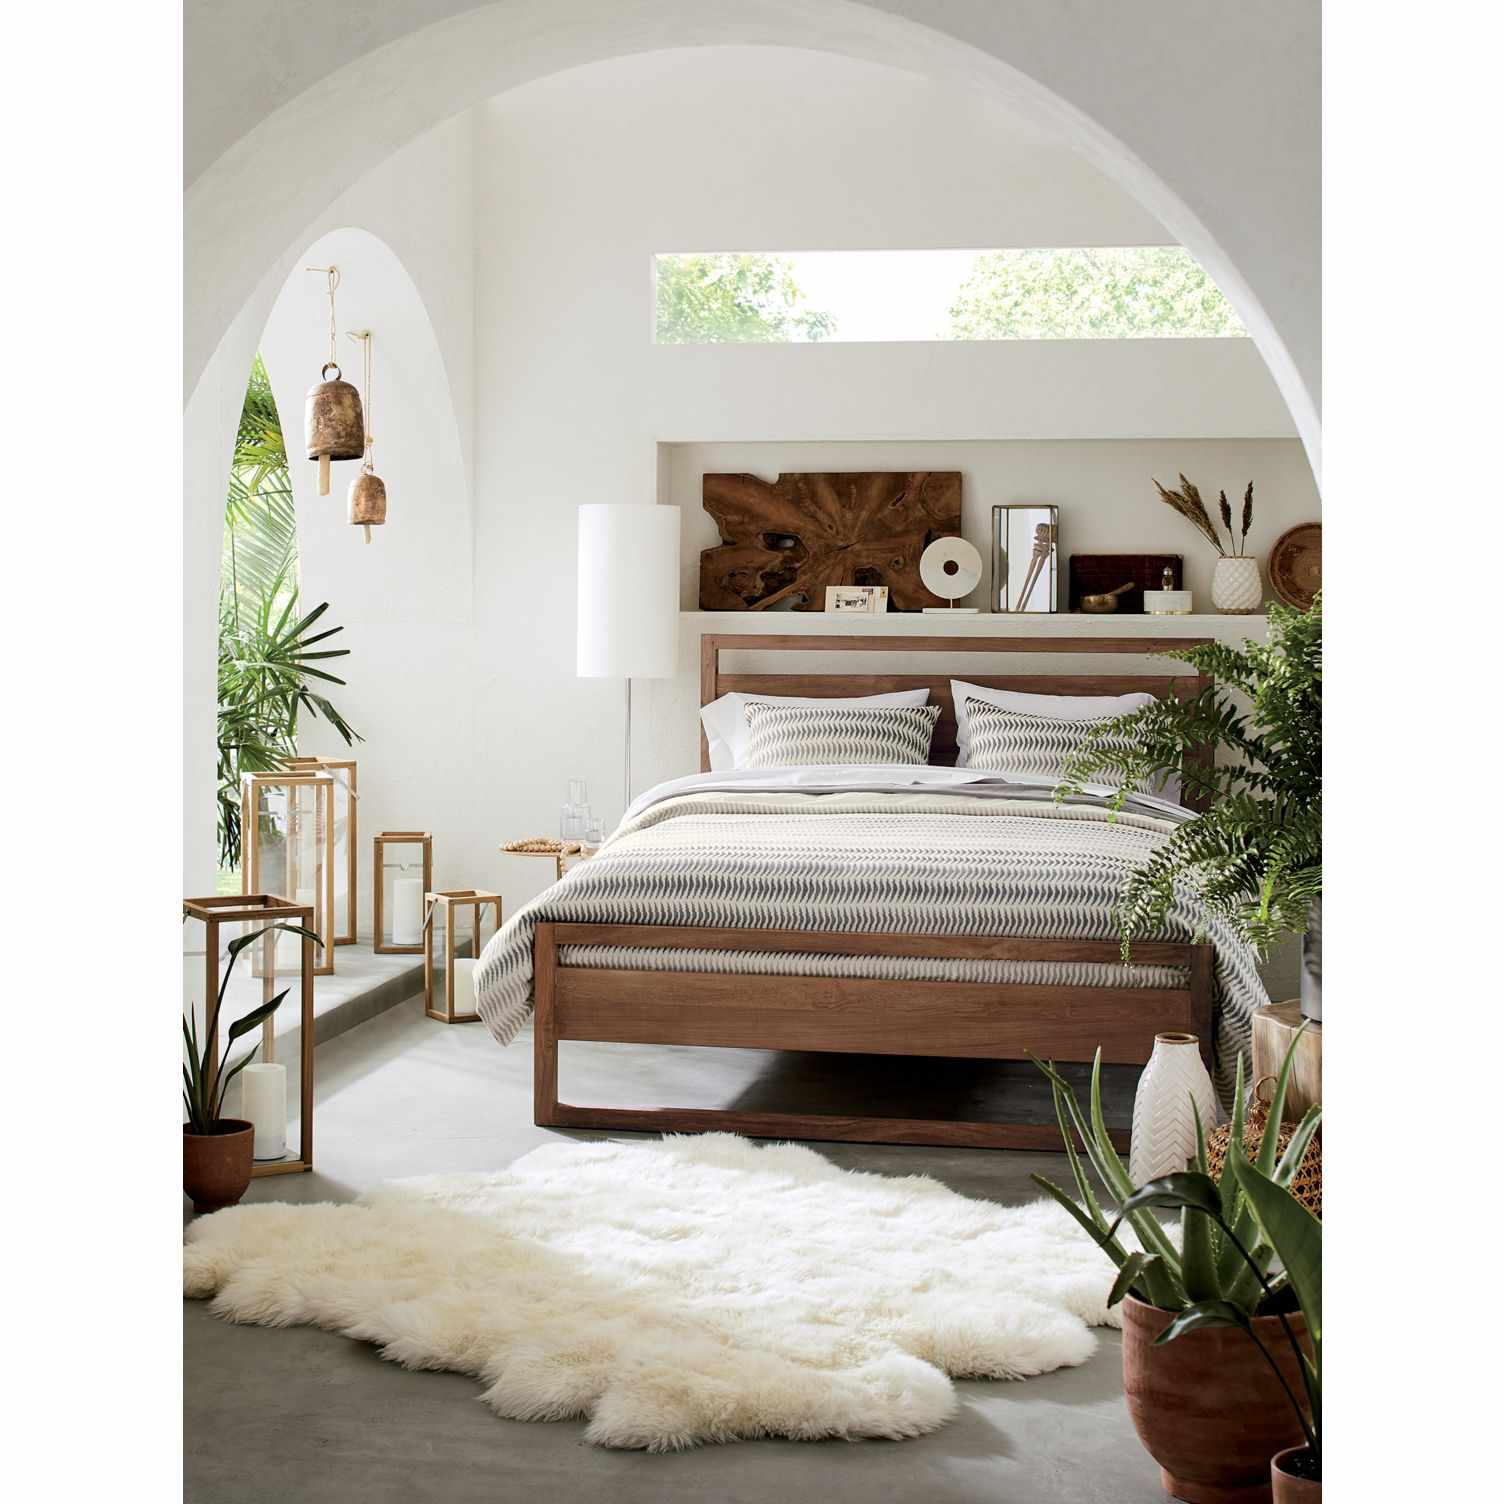 A sheepskin throw rug at the foot of a bed in a Mediterranean style bedroom.